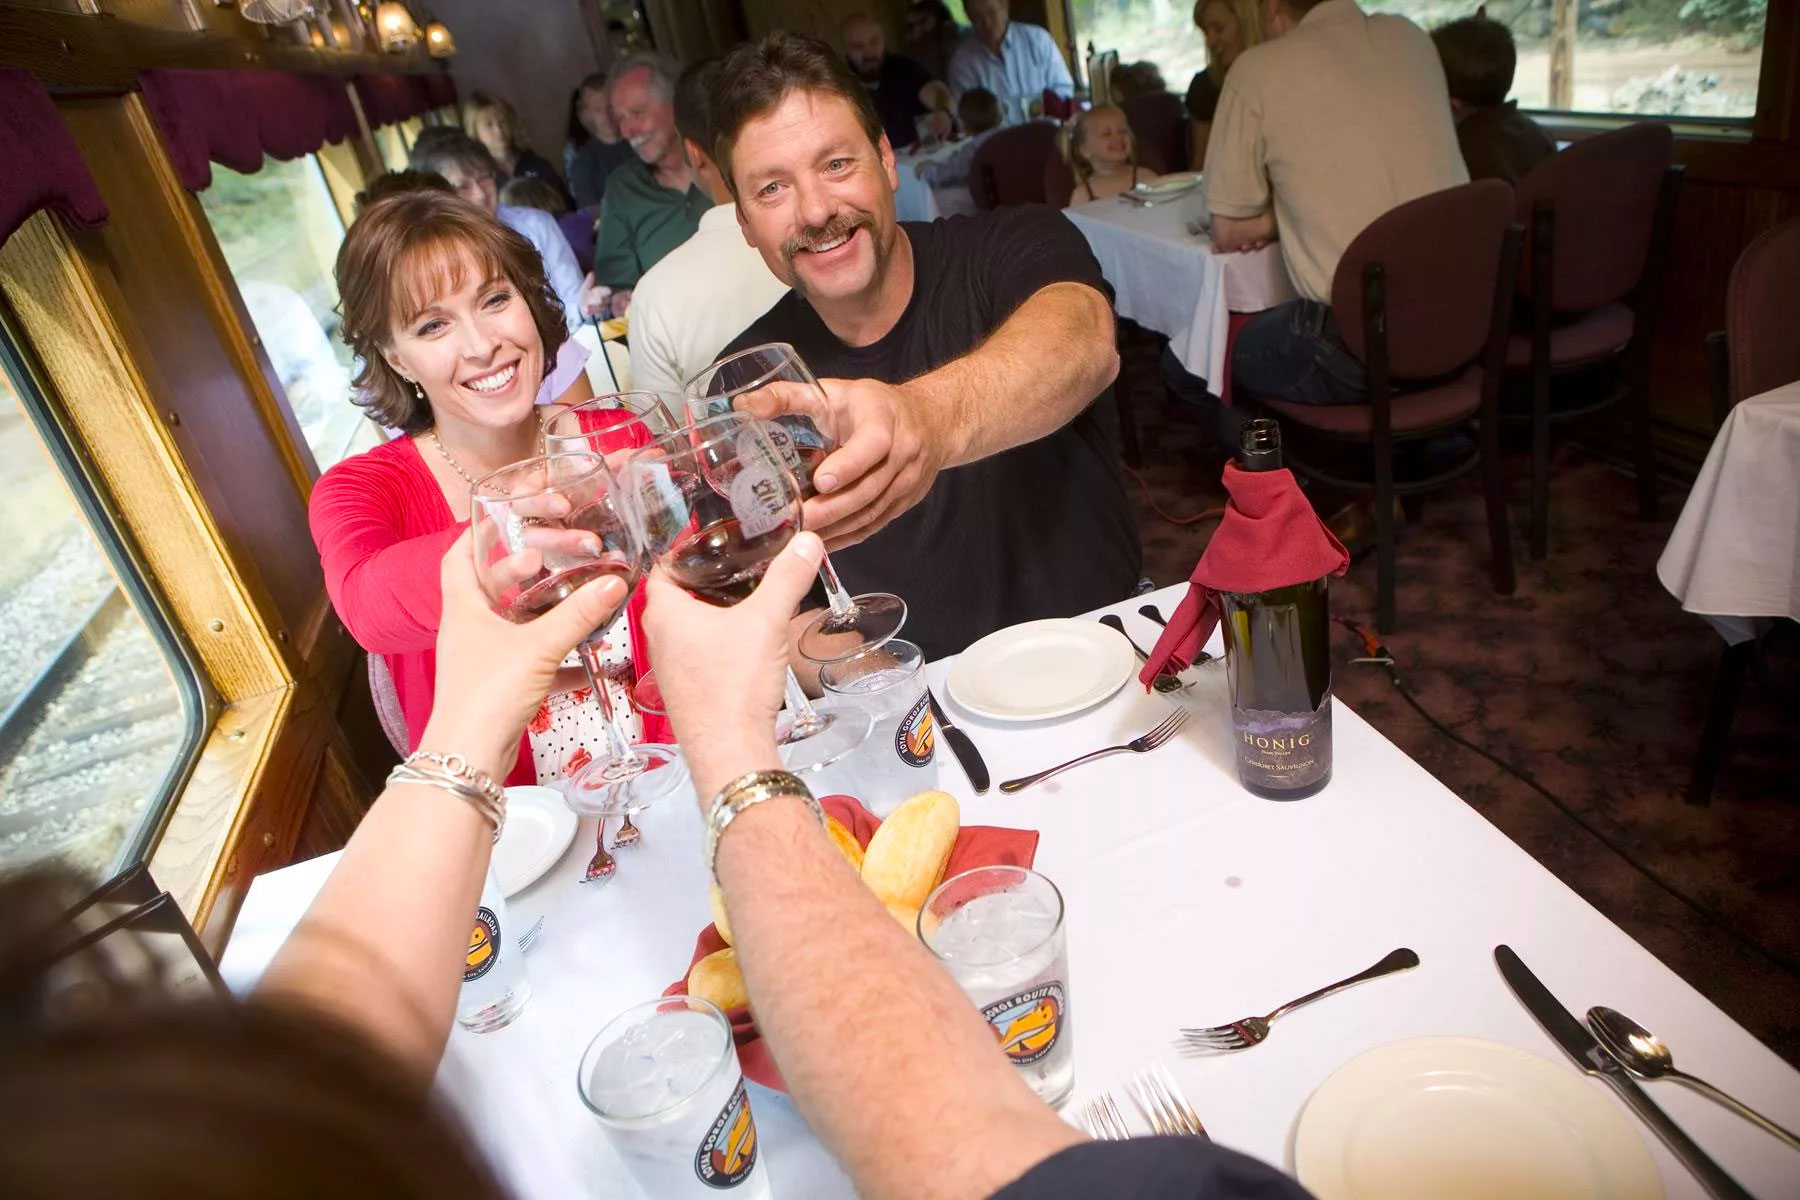 The Colorado Wine Train Pairs Memorable Scenery With Local Wines